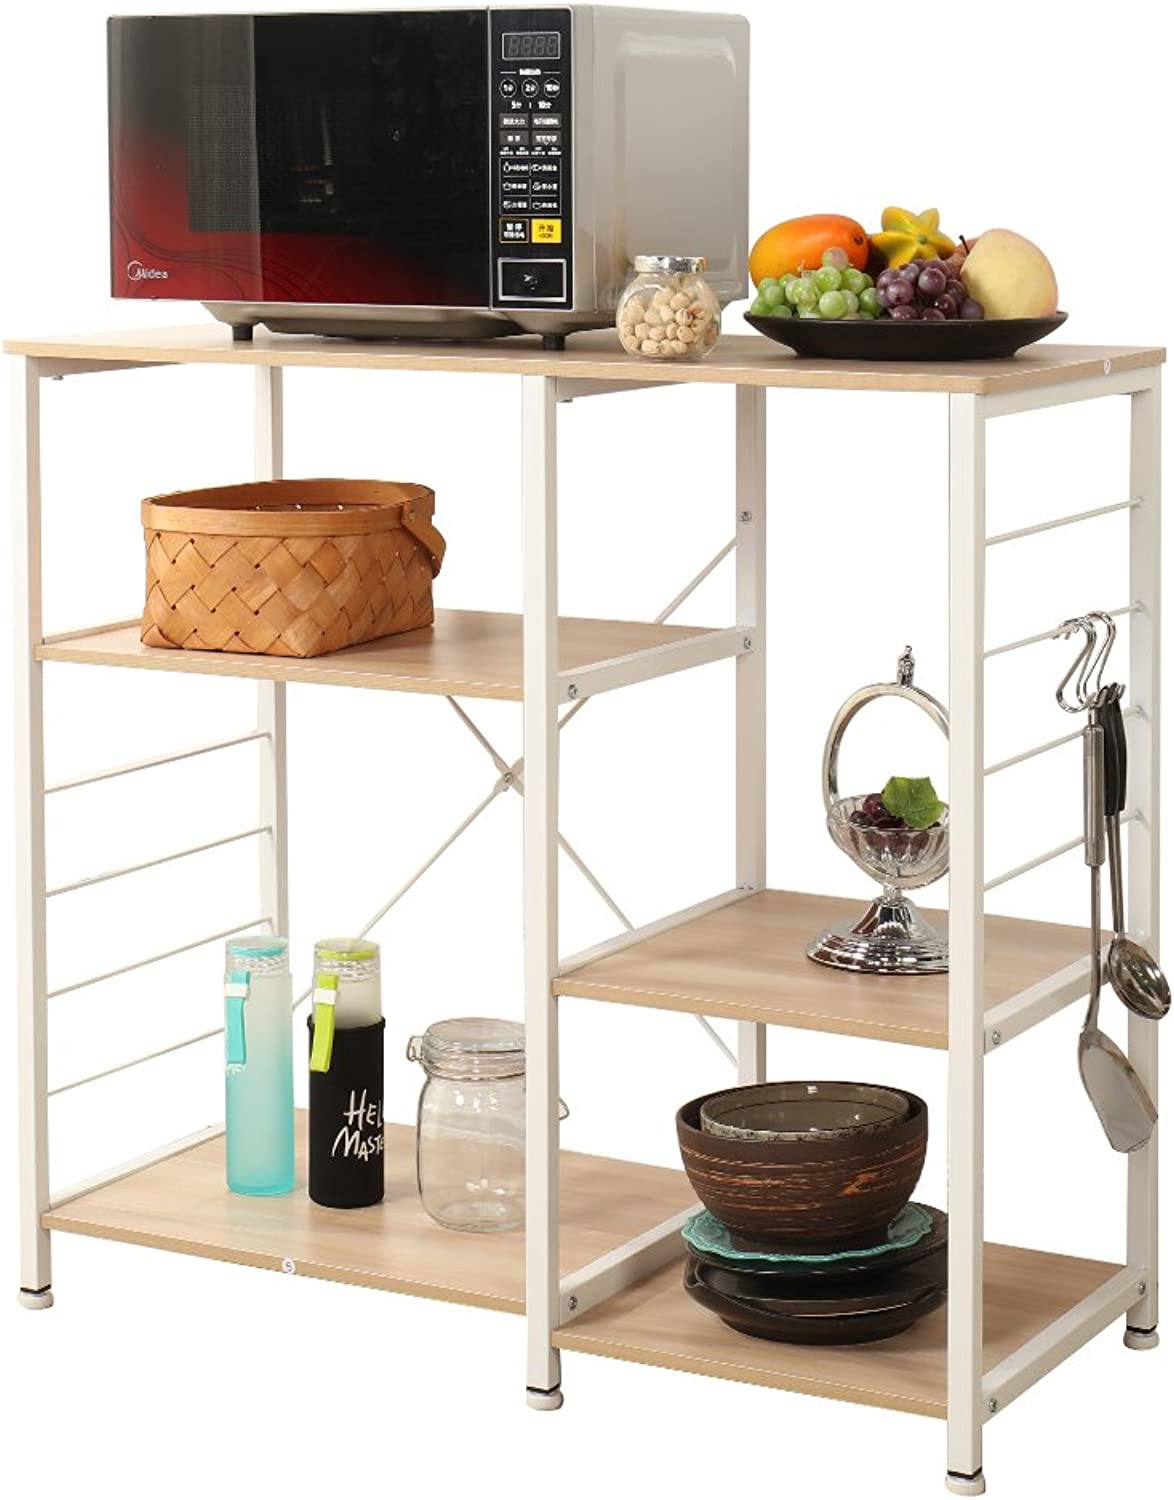 SogesHome Microwave Carts Microwave Stand Kitchen Baker's Rack Workstation with Storage Shelf, Oak 171-MO-HCA